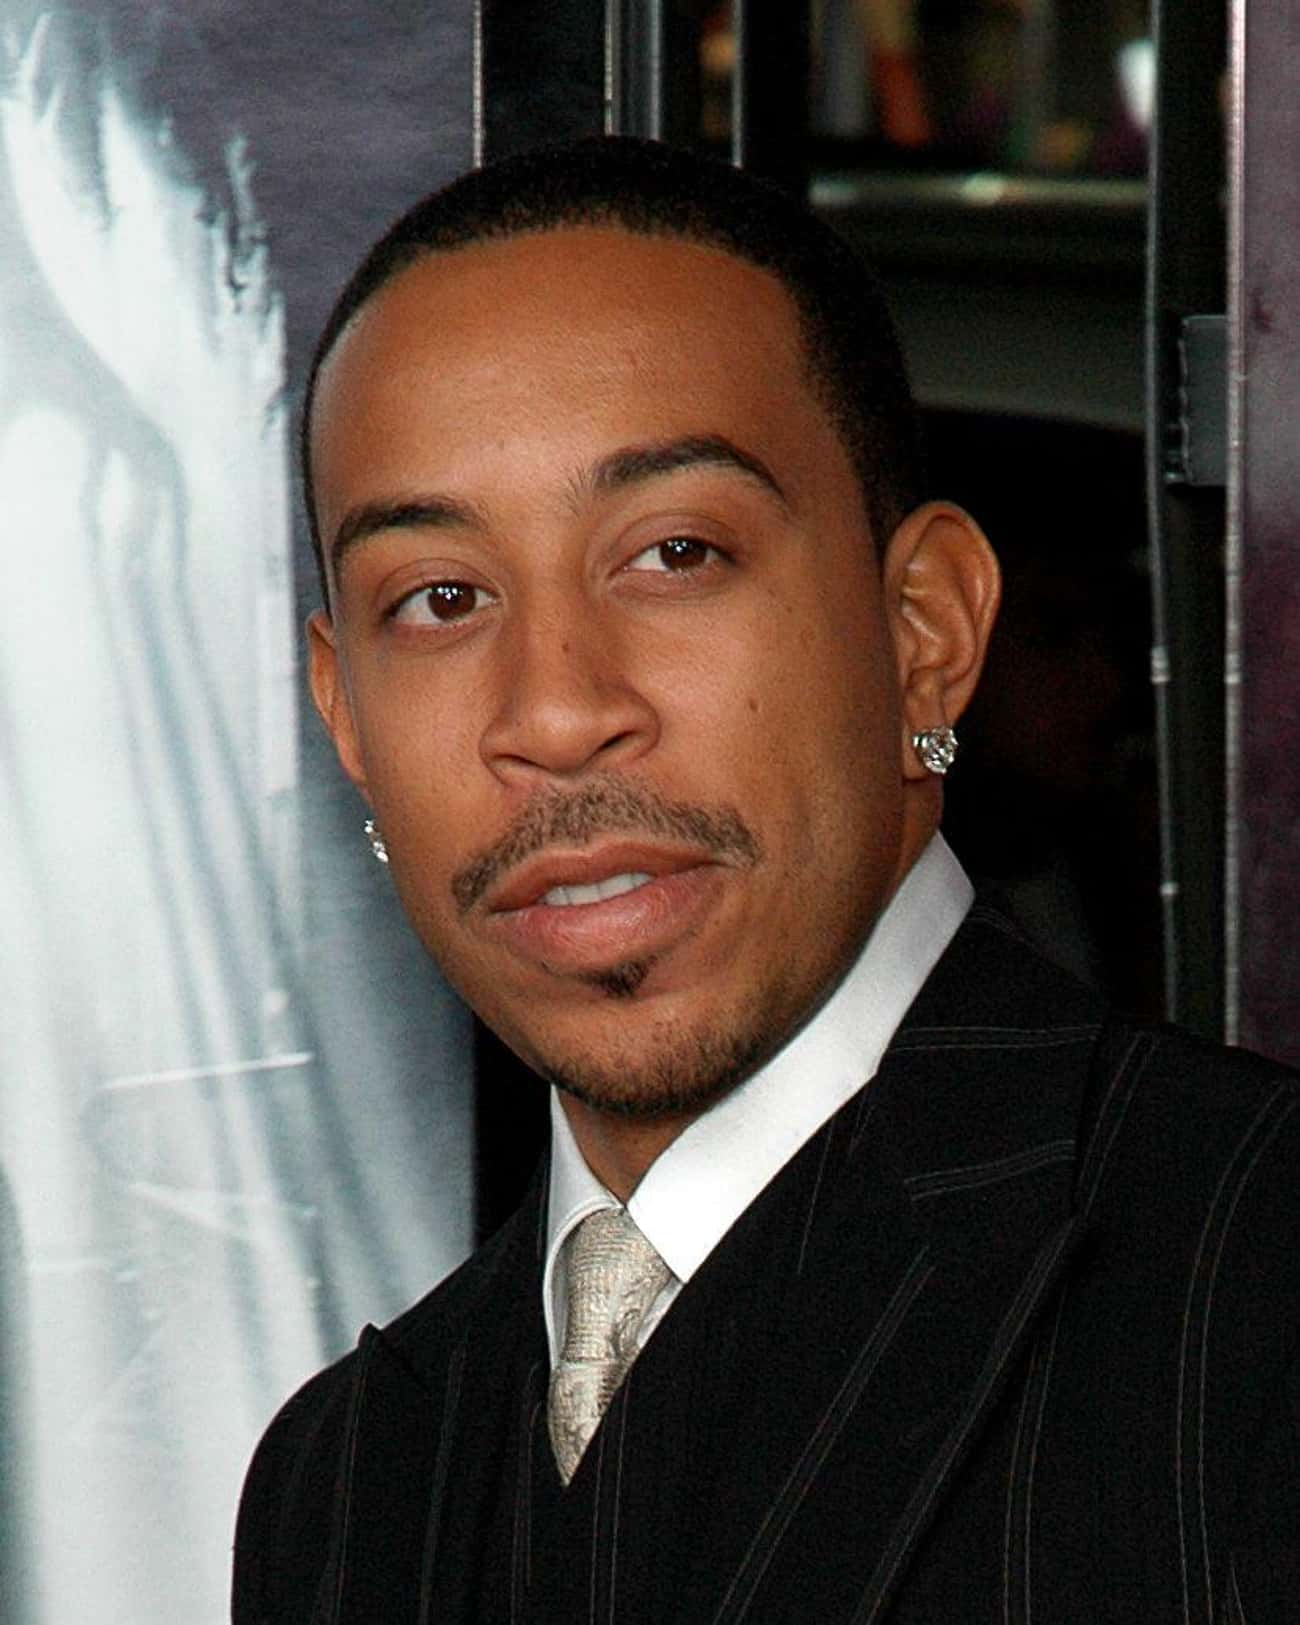 Ludacris Used To Pay Someone T is listed (or ranked) 4 on the list 15 Ridiculous Jobs Celebrities Reportedly Employ People To Do